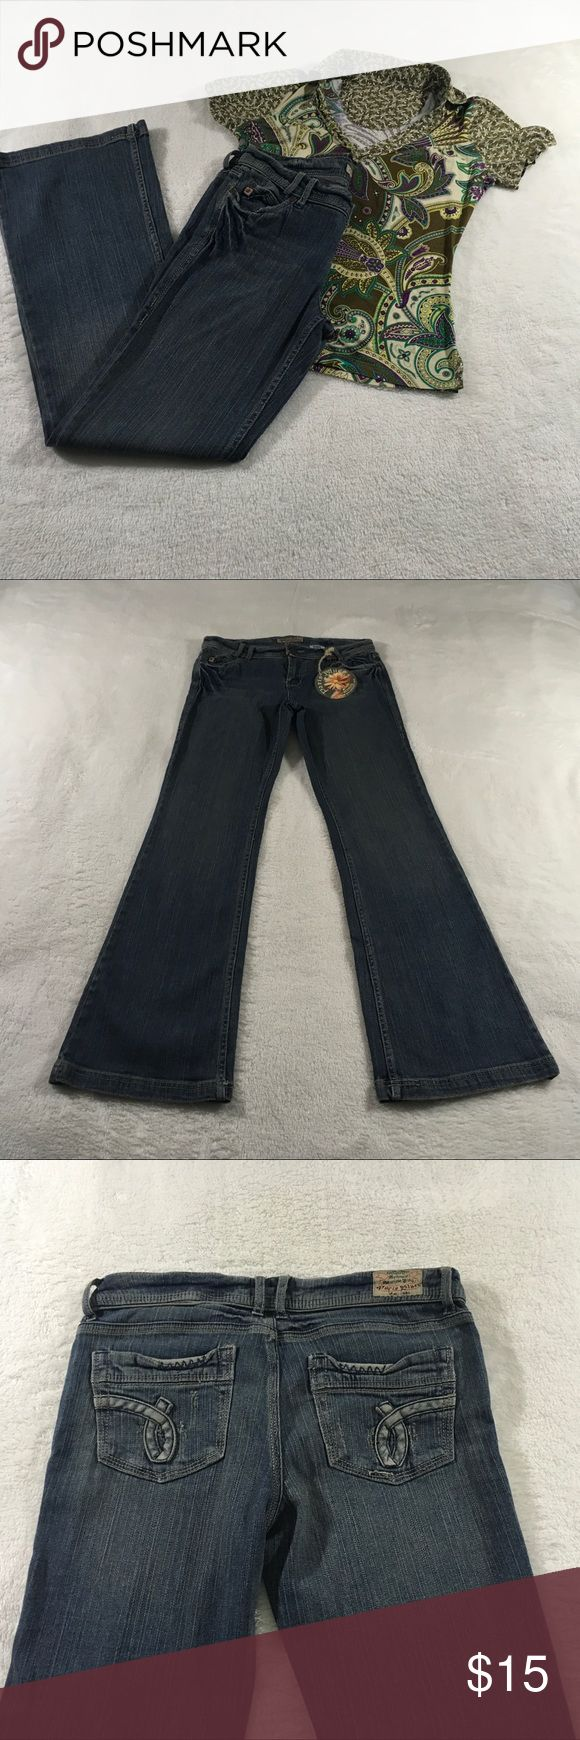 Paris Blues Juniors Size 9 Boot Cut Jeans Flare Jeans Boot Cut Stretch Medium Wash Jeans New with Tags Blouse Not Included Measurements Front Rise- 9.5               Hips-18 Back Rise- 12.                 Inseam- 31 Waist- 30                       Outseam- 39.5 Paris Blues Jeans Flare & Wide Leg